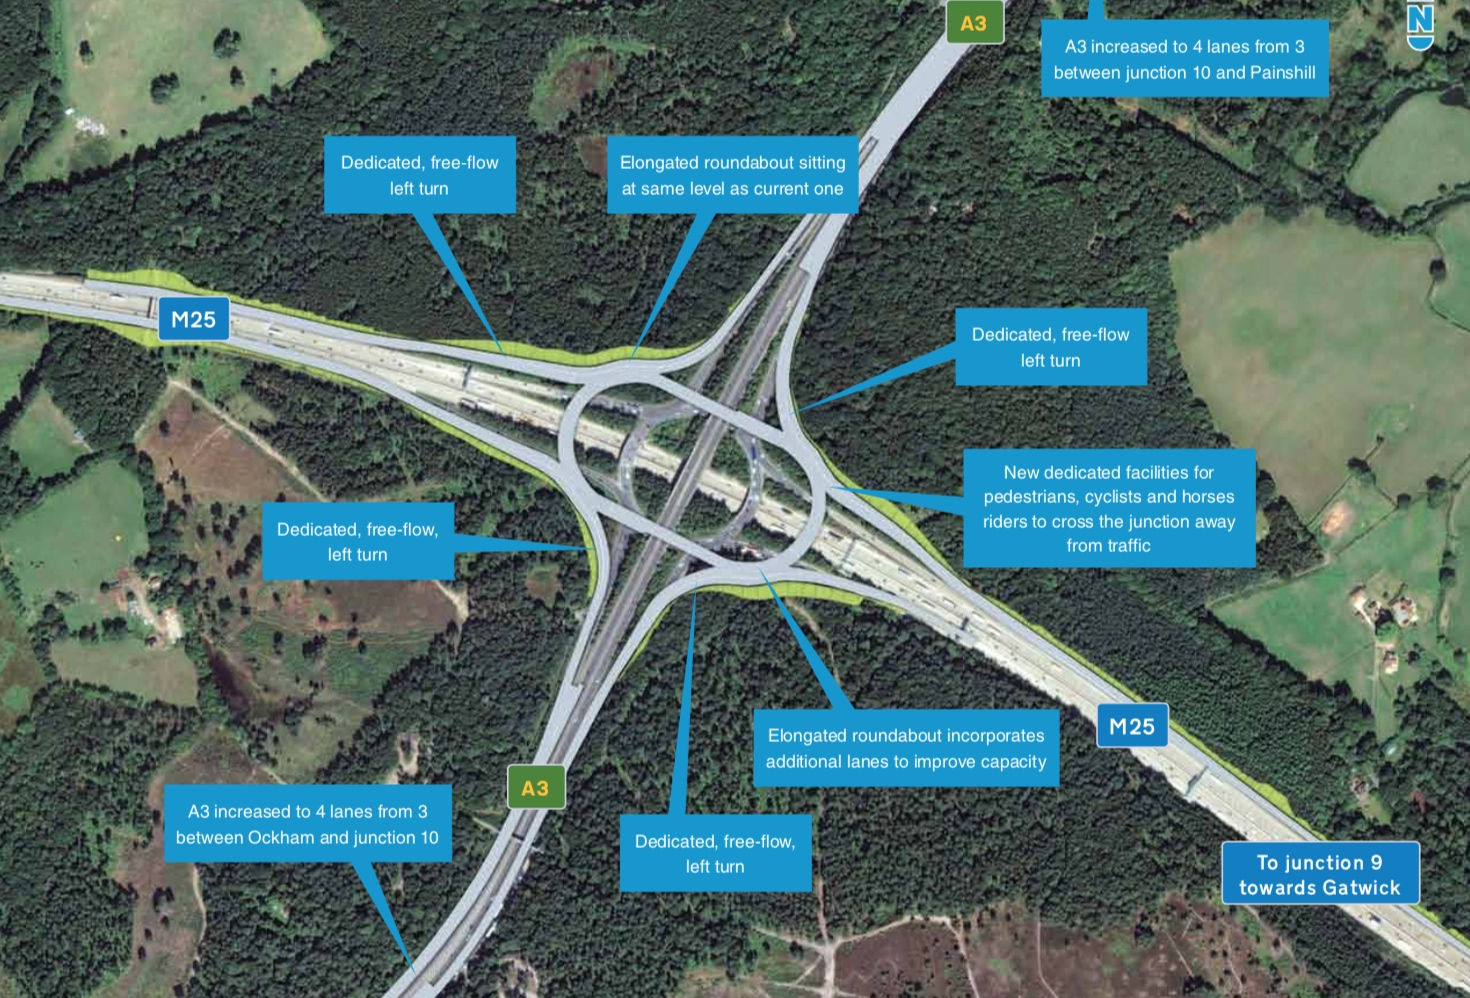 175m m25 a3 junction revamp plan decided construction enquirer the m25a3 interchange is a key congestion pinch point on the strategic road network and has one of the highest recorded collision rates across the highways publicscrutiny Image collections